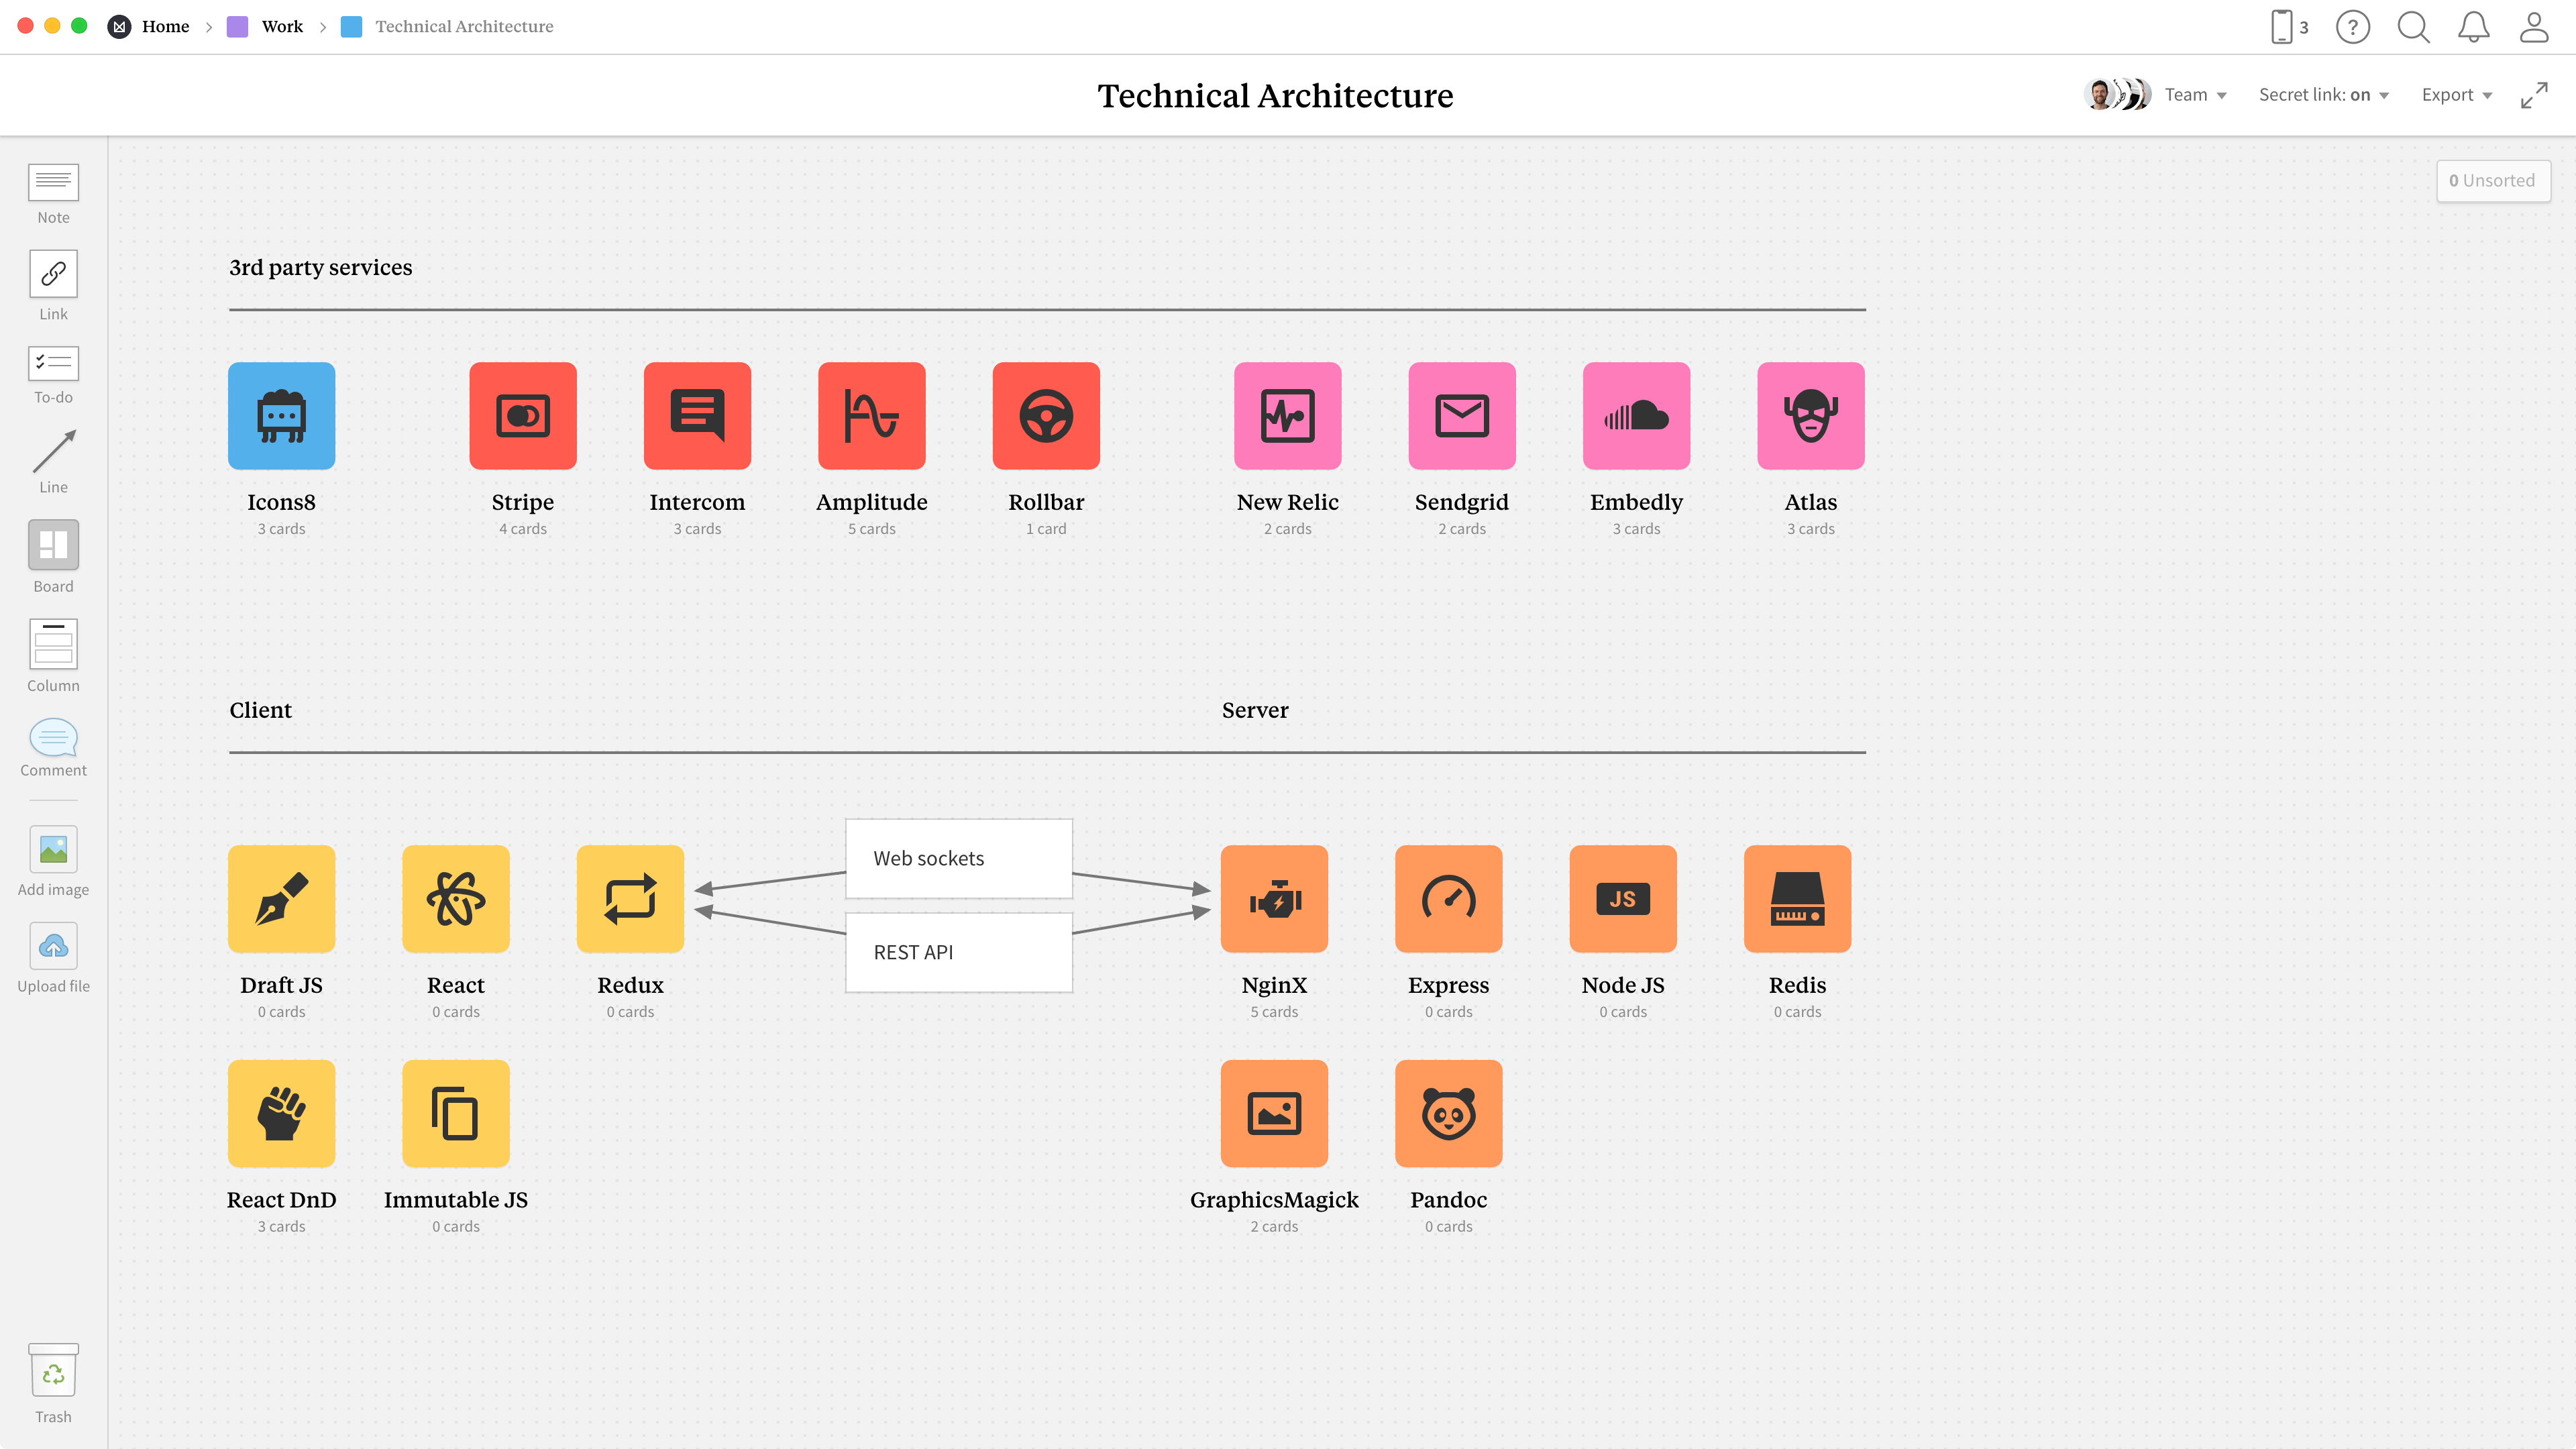 Completed Technical Architecture template in Milanote app